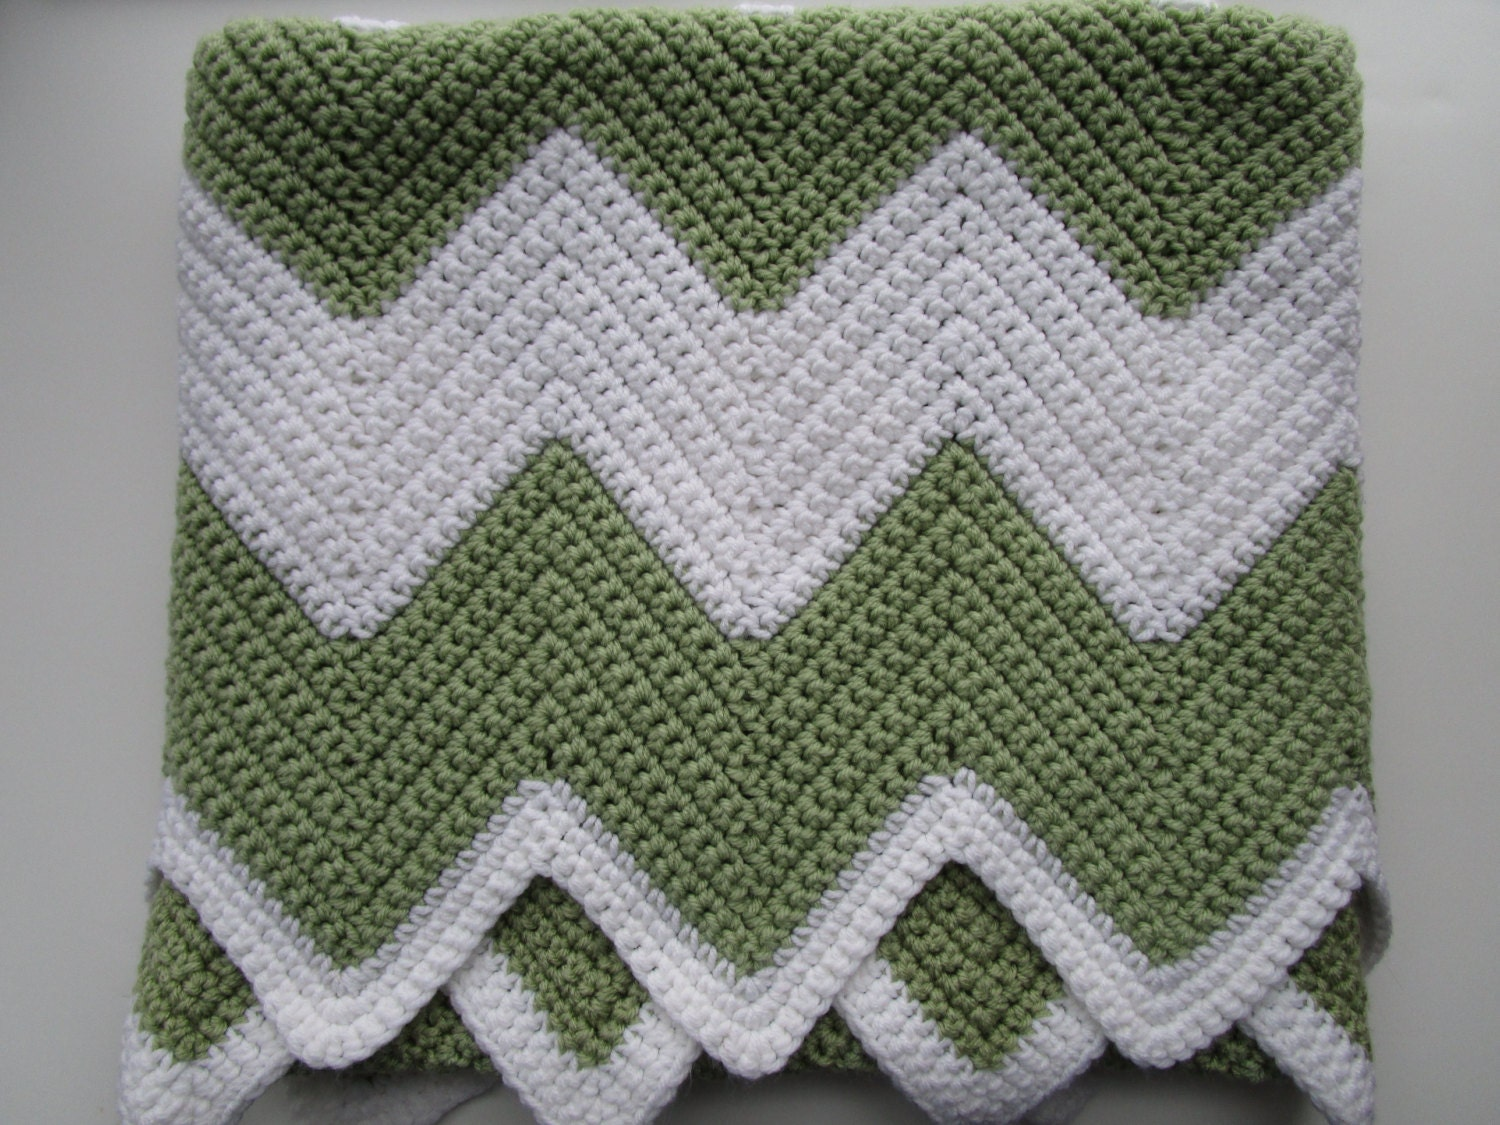 Crochet Pattern Chevron Baby Blanket : Crochet Chevron Baby Blanket www.galleryhip.com - The ...